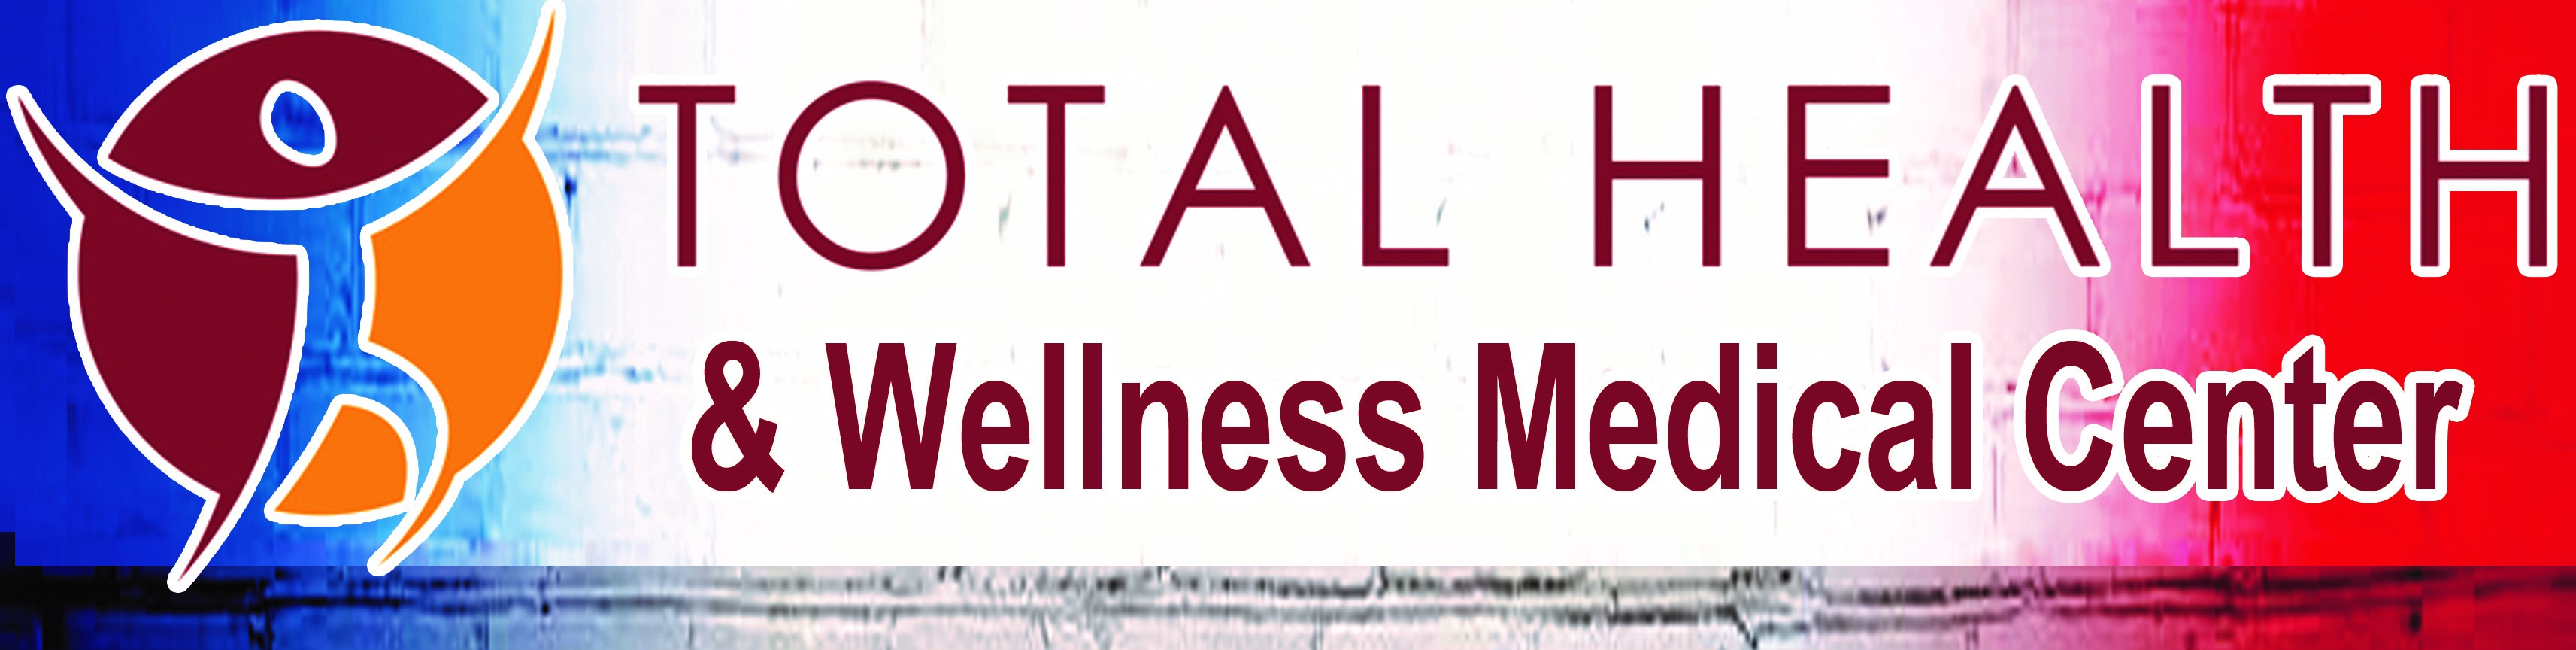 Total Health & Wellness Medical Center